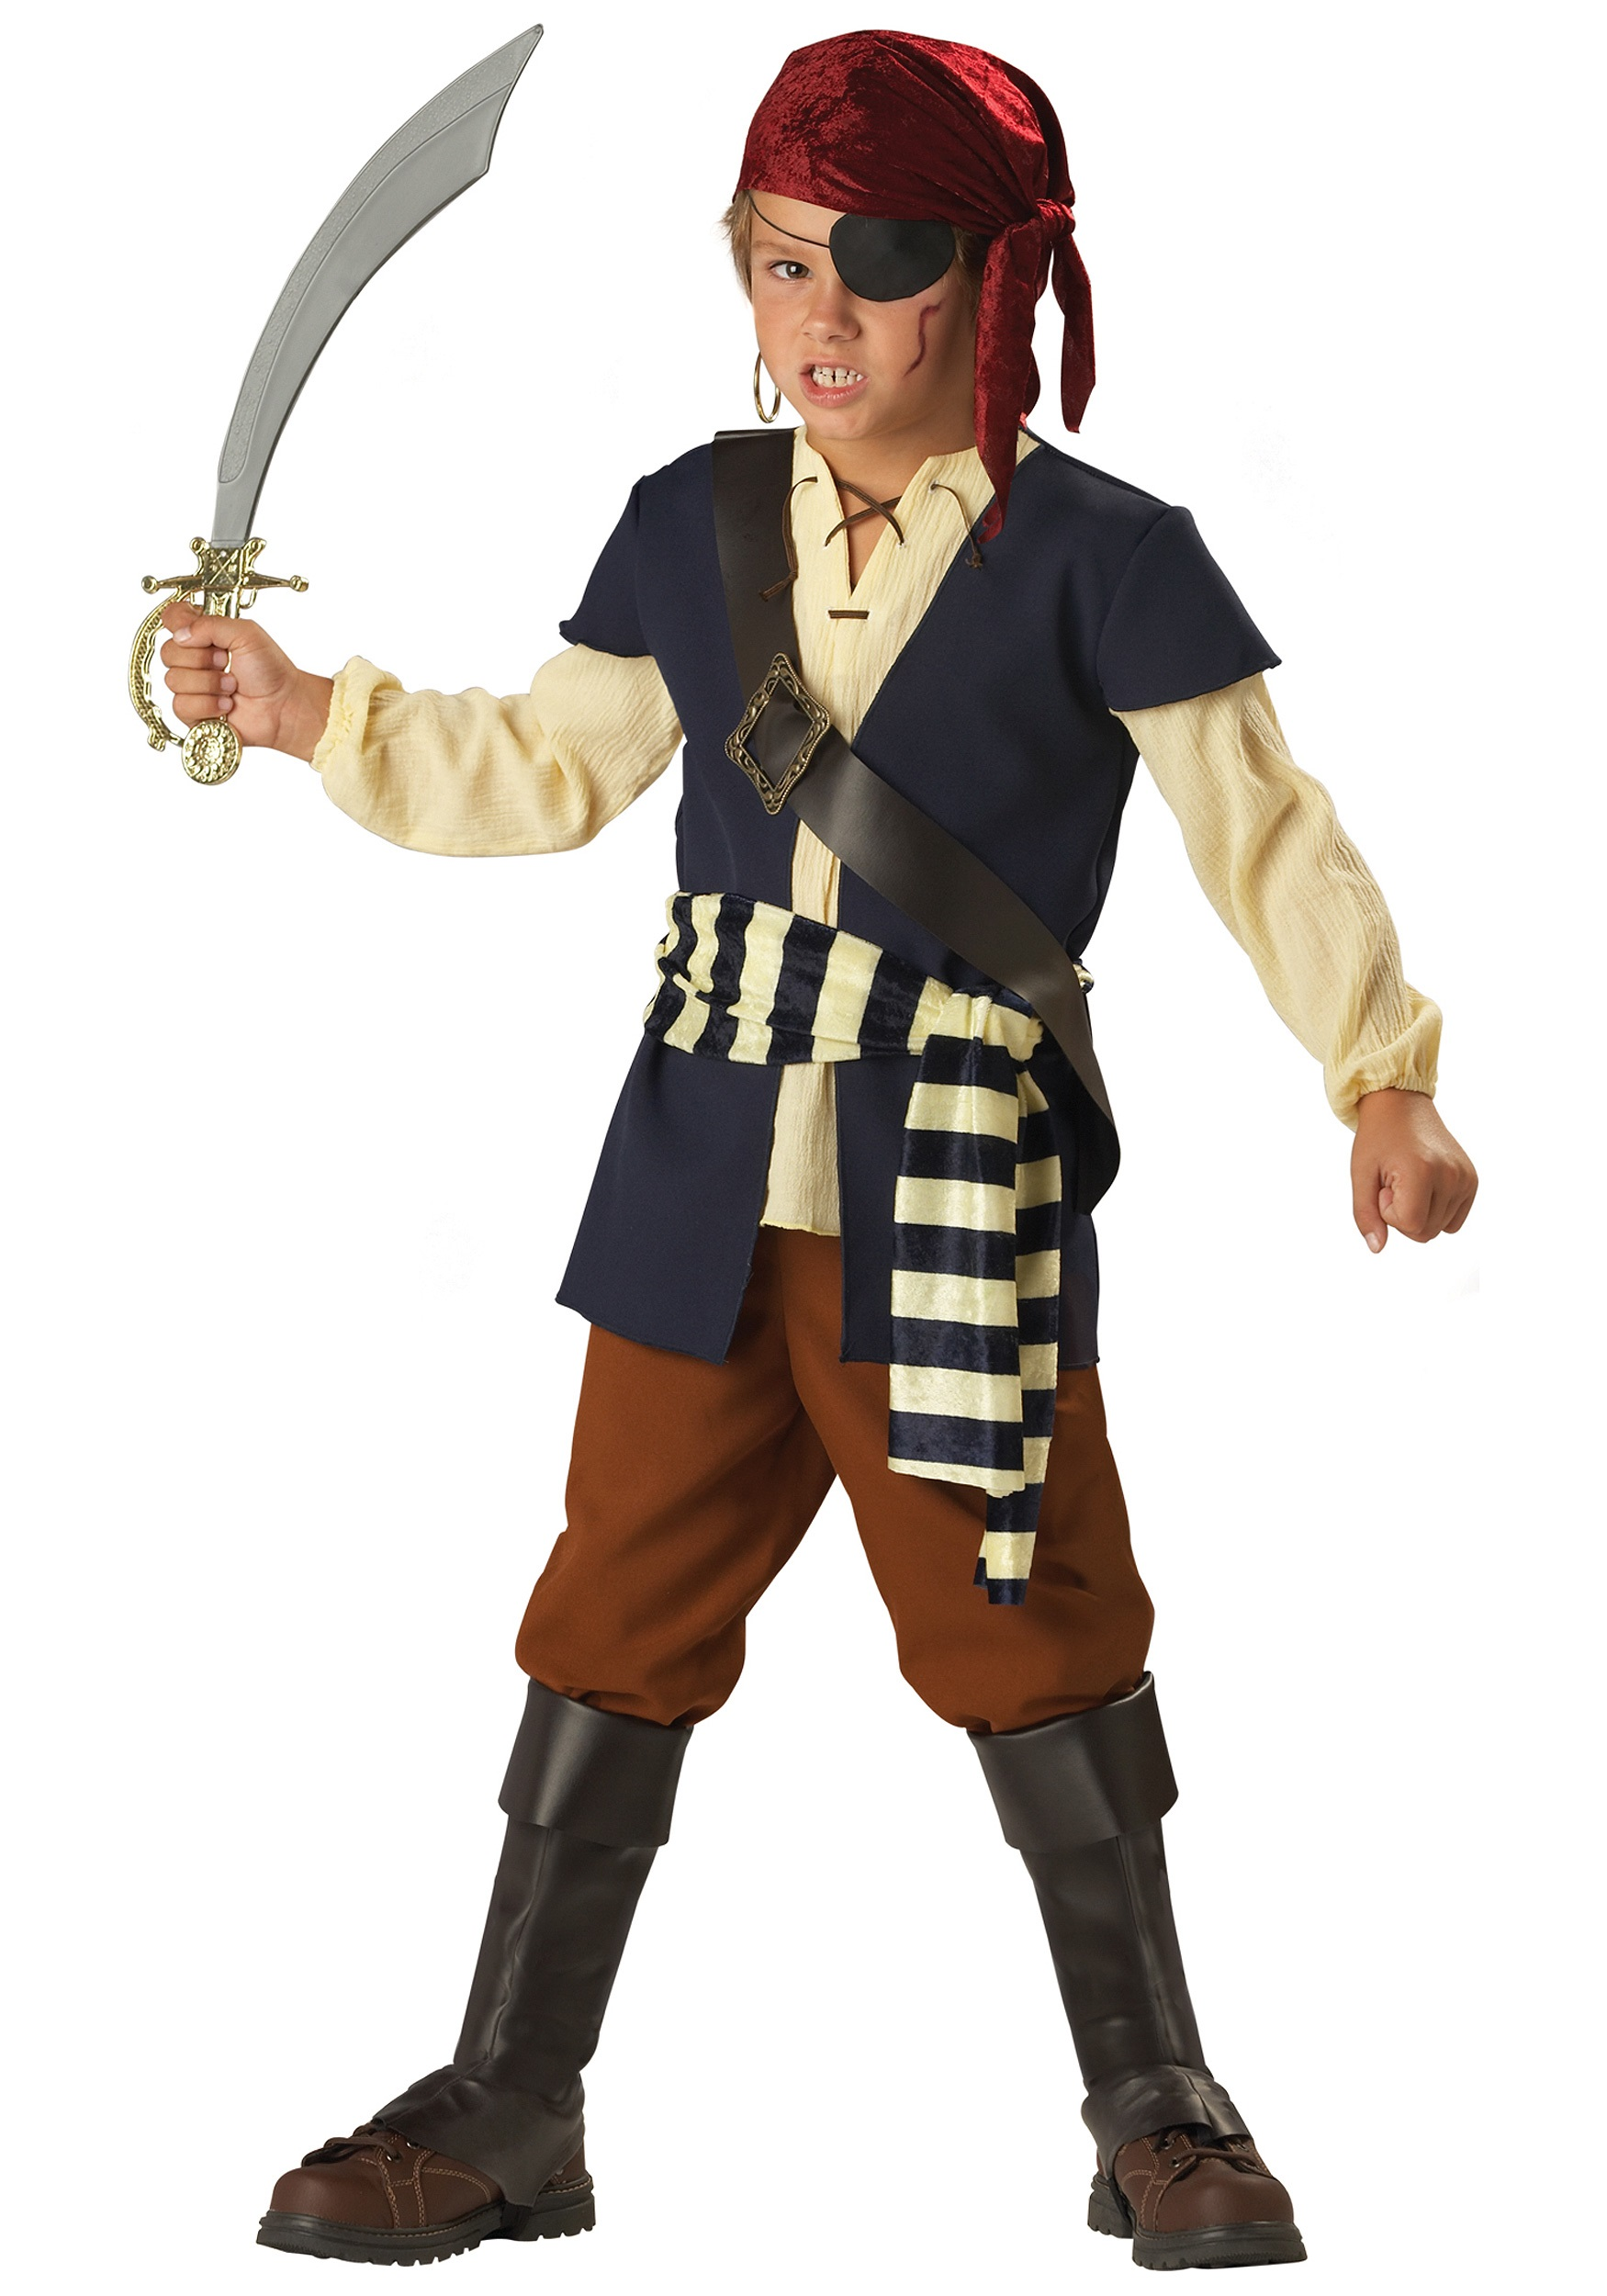 Kids Pirate Mate Costume  sc 1 st  Halloween Costumes & Kidu0027s Pirate Costumes - Boys Girls Pirate Halloween Costume